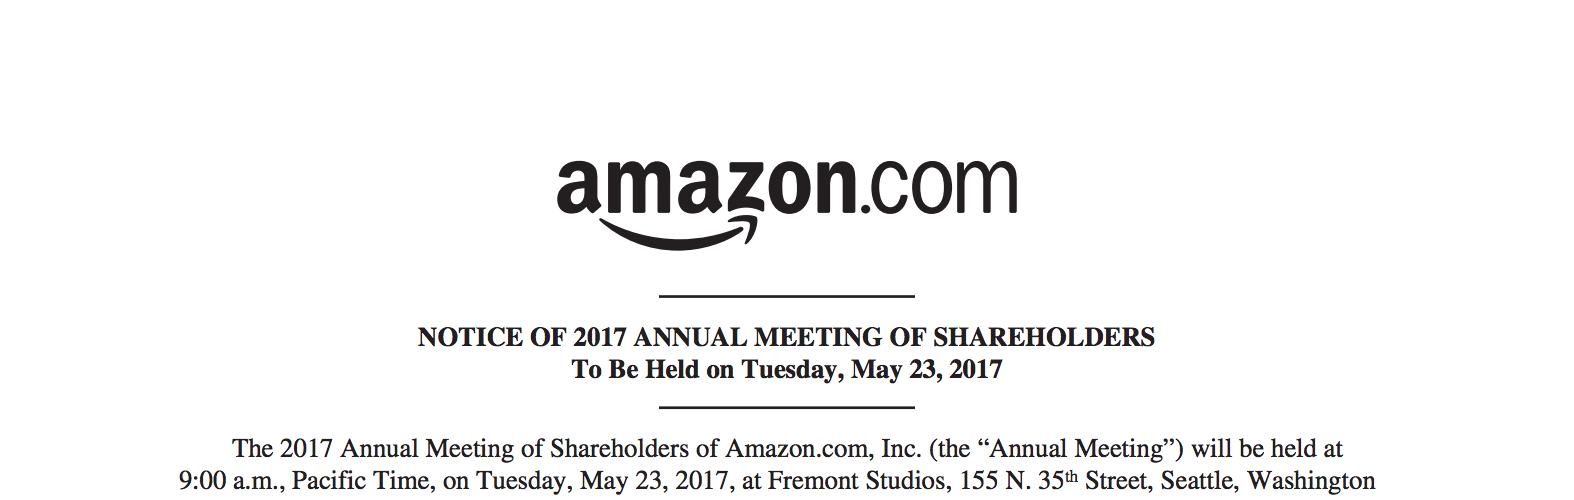 Lessons From Amazon S Shareholder Letters Hacker Noon